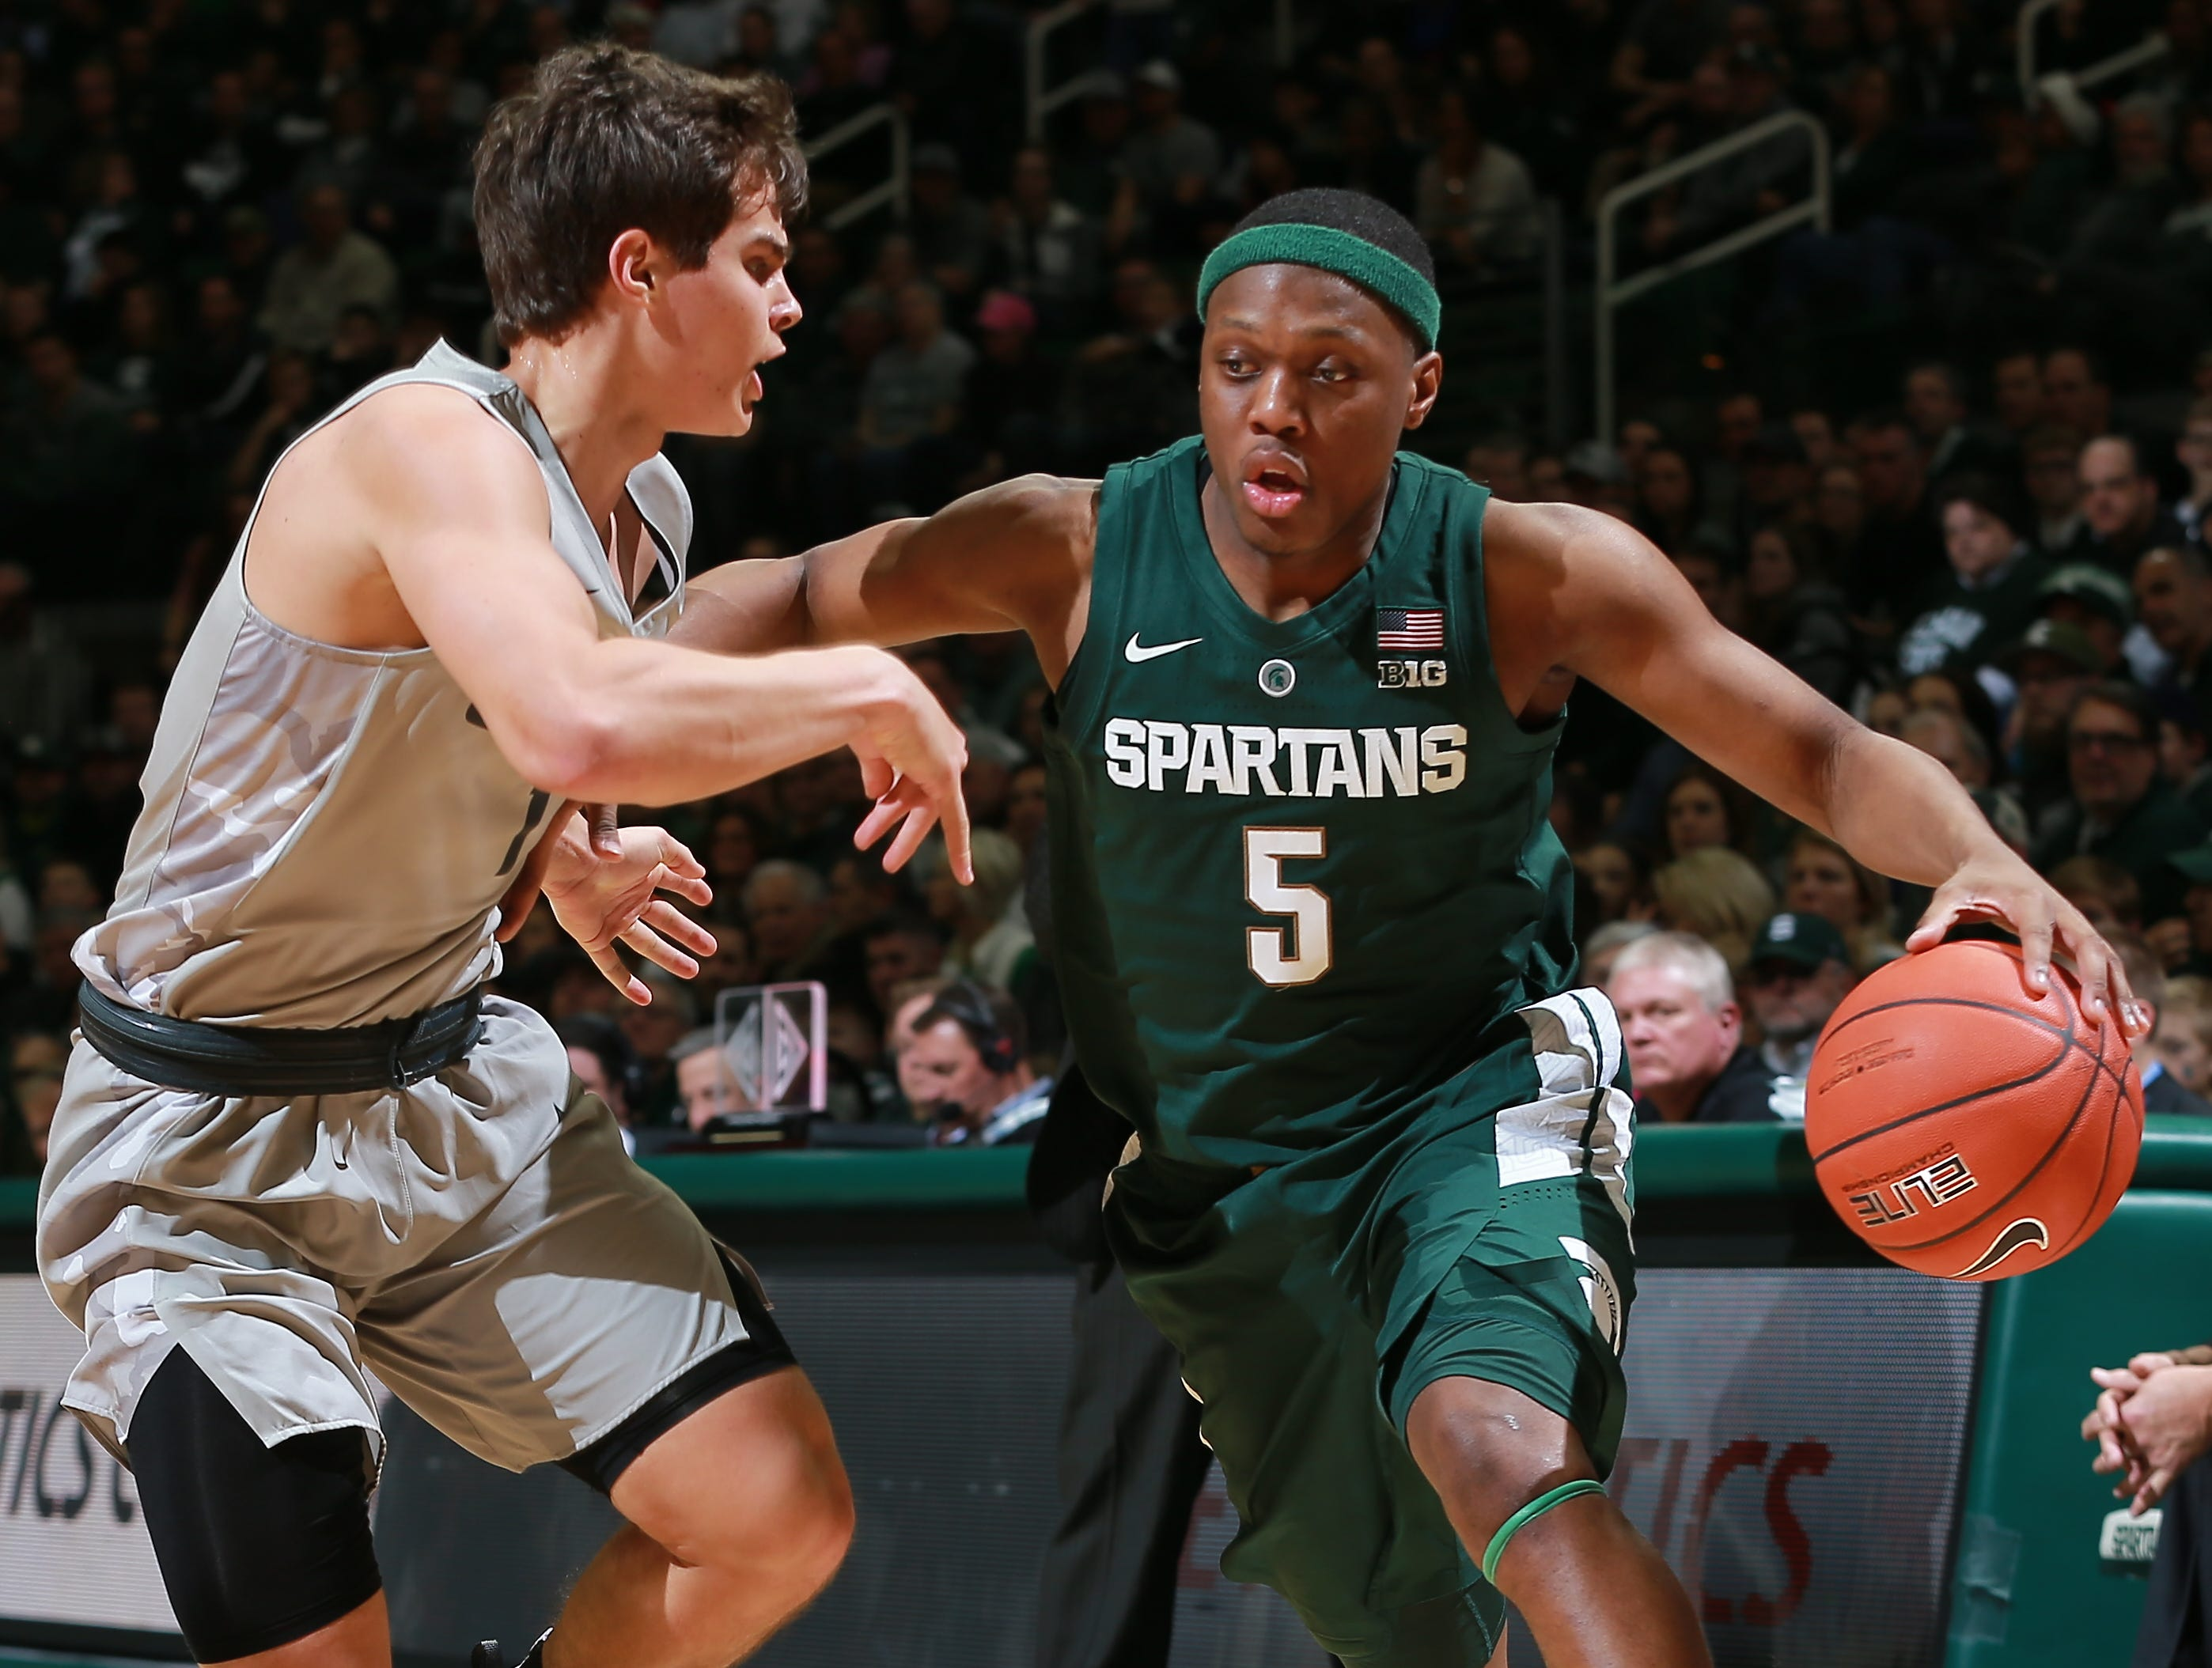 Cassius Winston #5 of the Michigan State Spartans handles the ball while defended by Braden Norris #1 of the Oakland Golden Grizzlies in the first half at Breslin Center on December 21, 2018 in East Lansing, Michigan.